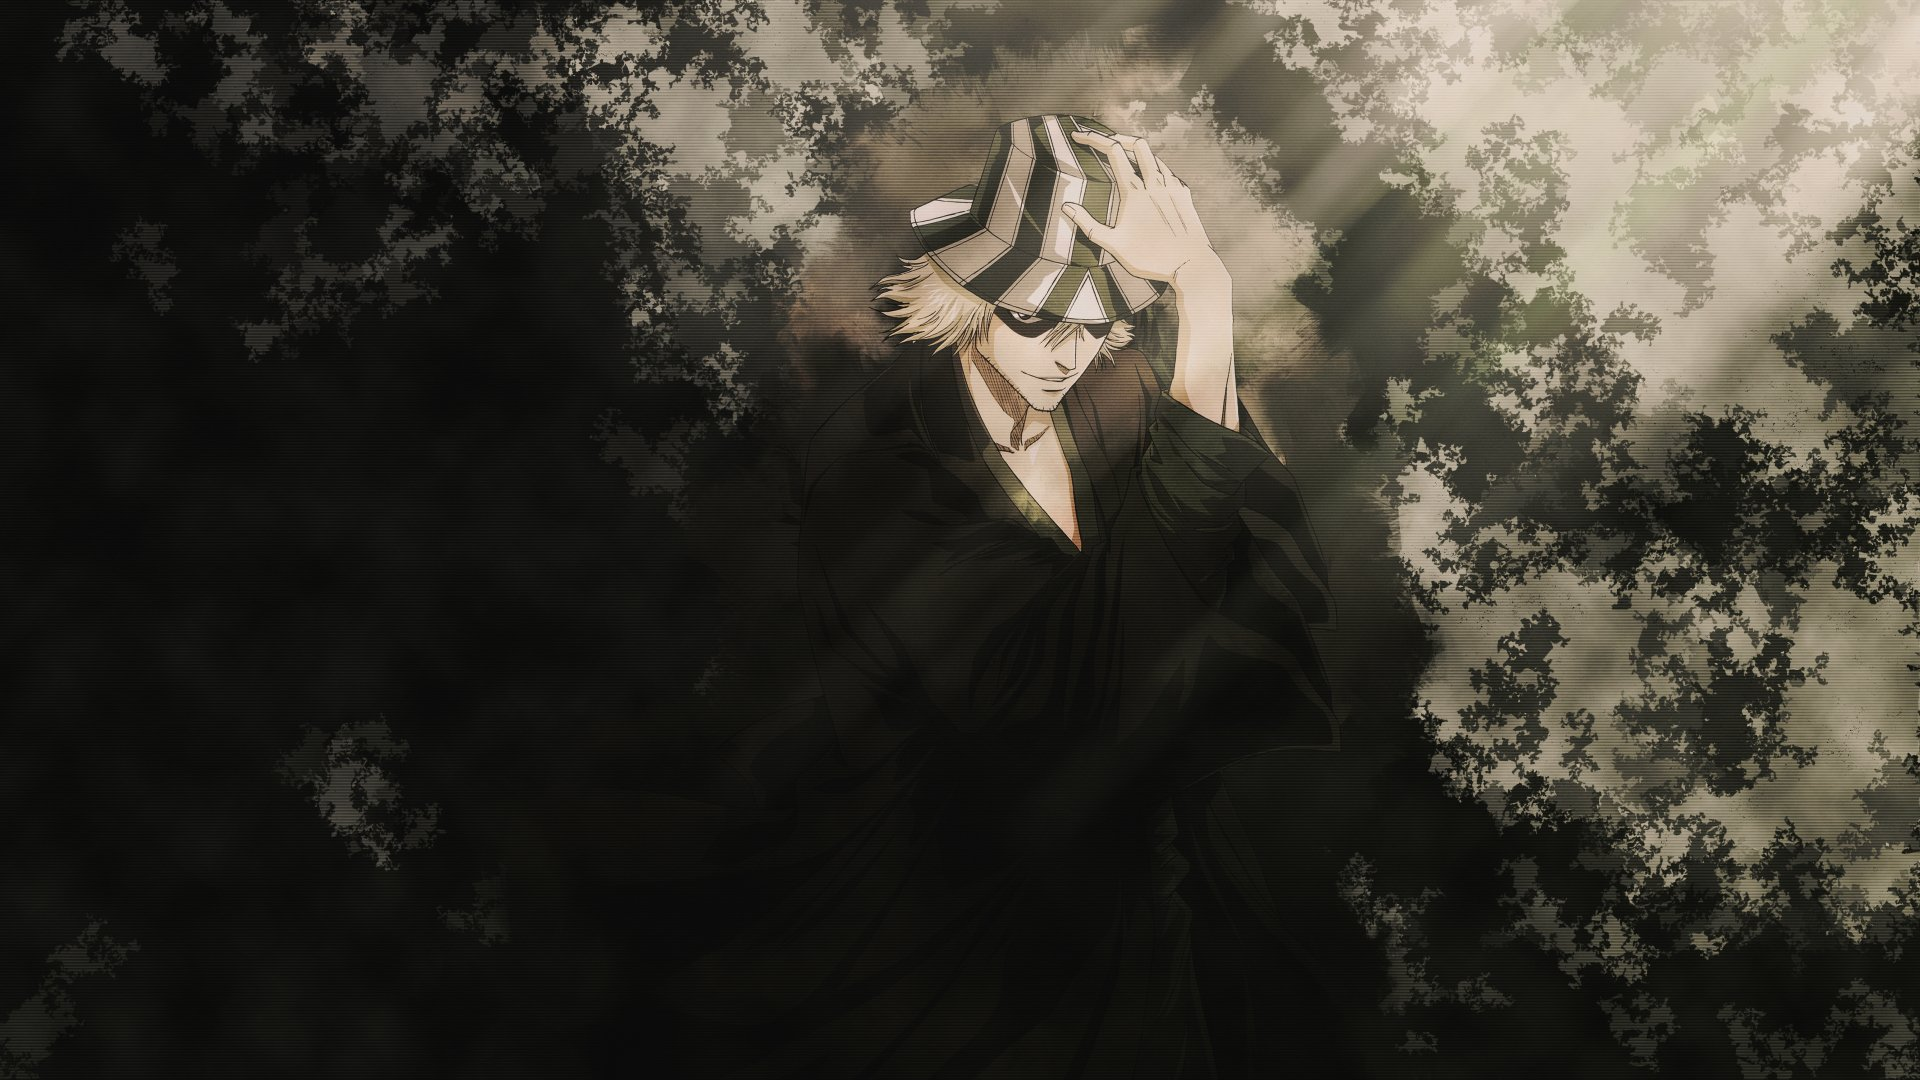 Anime - Bleach  Kisuke Urahara Wallpaper